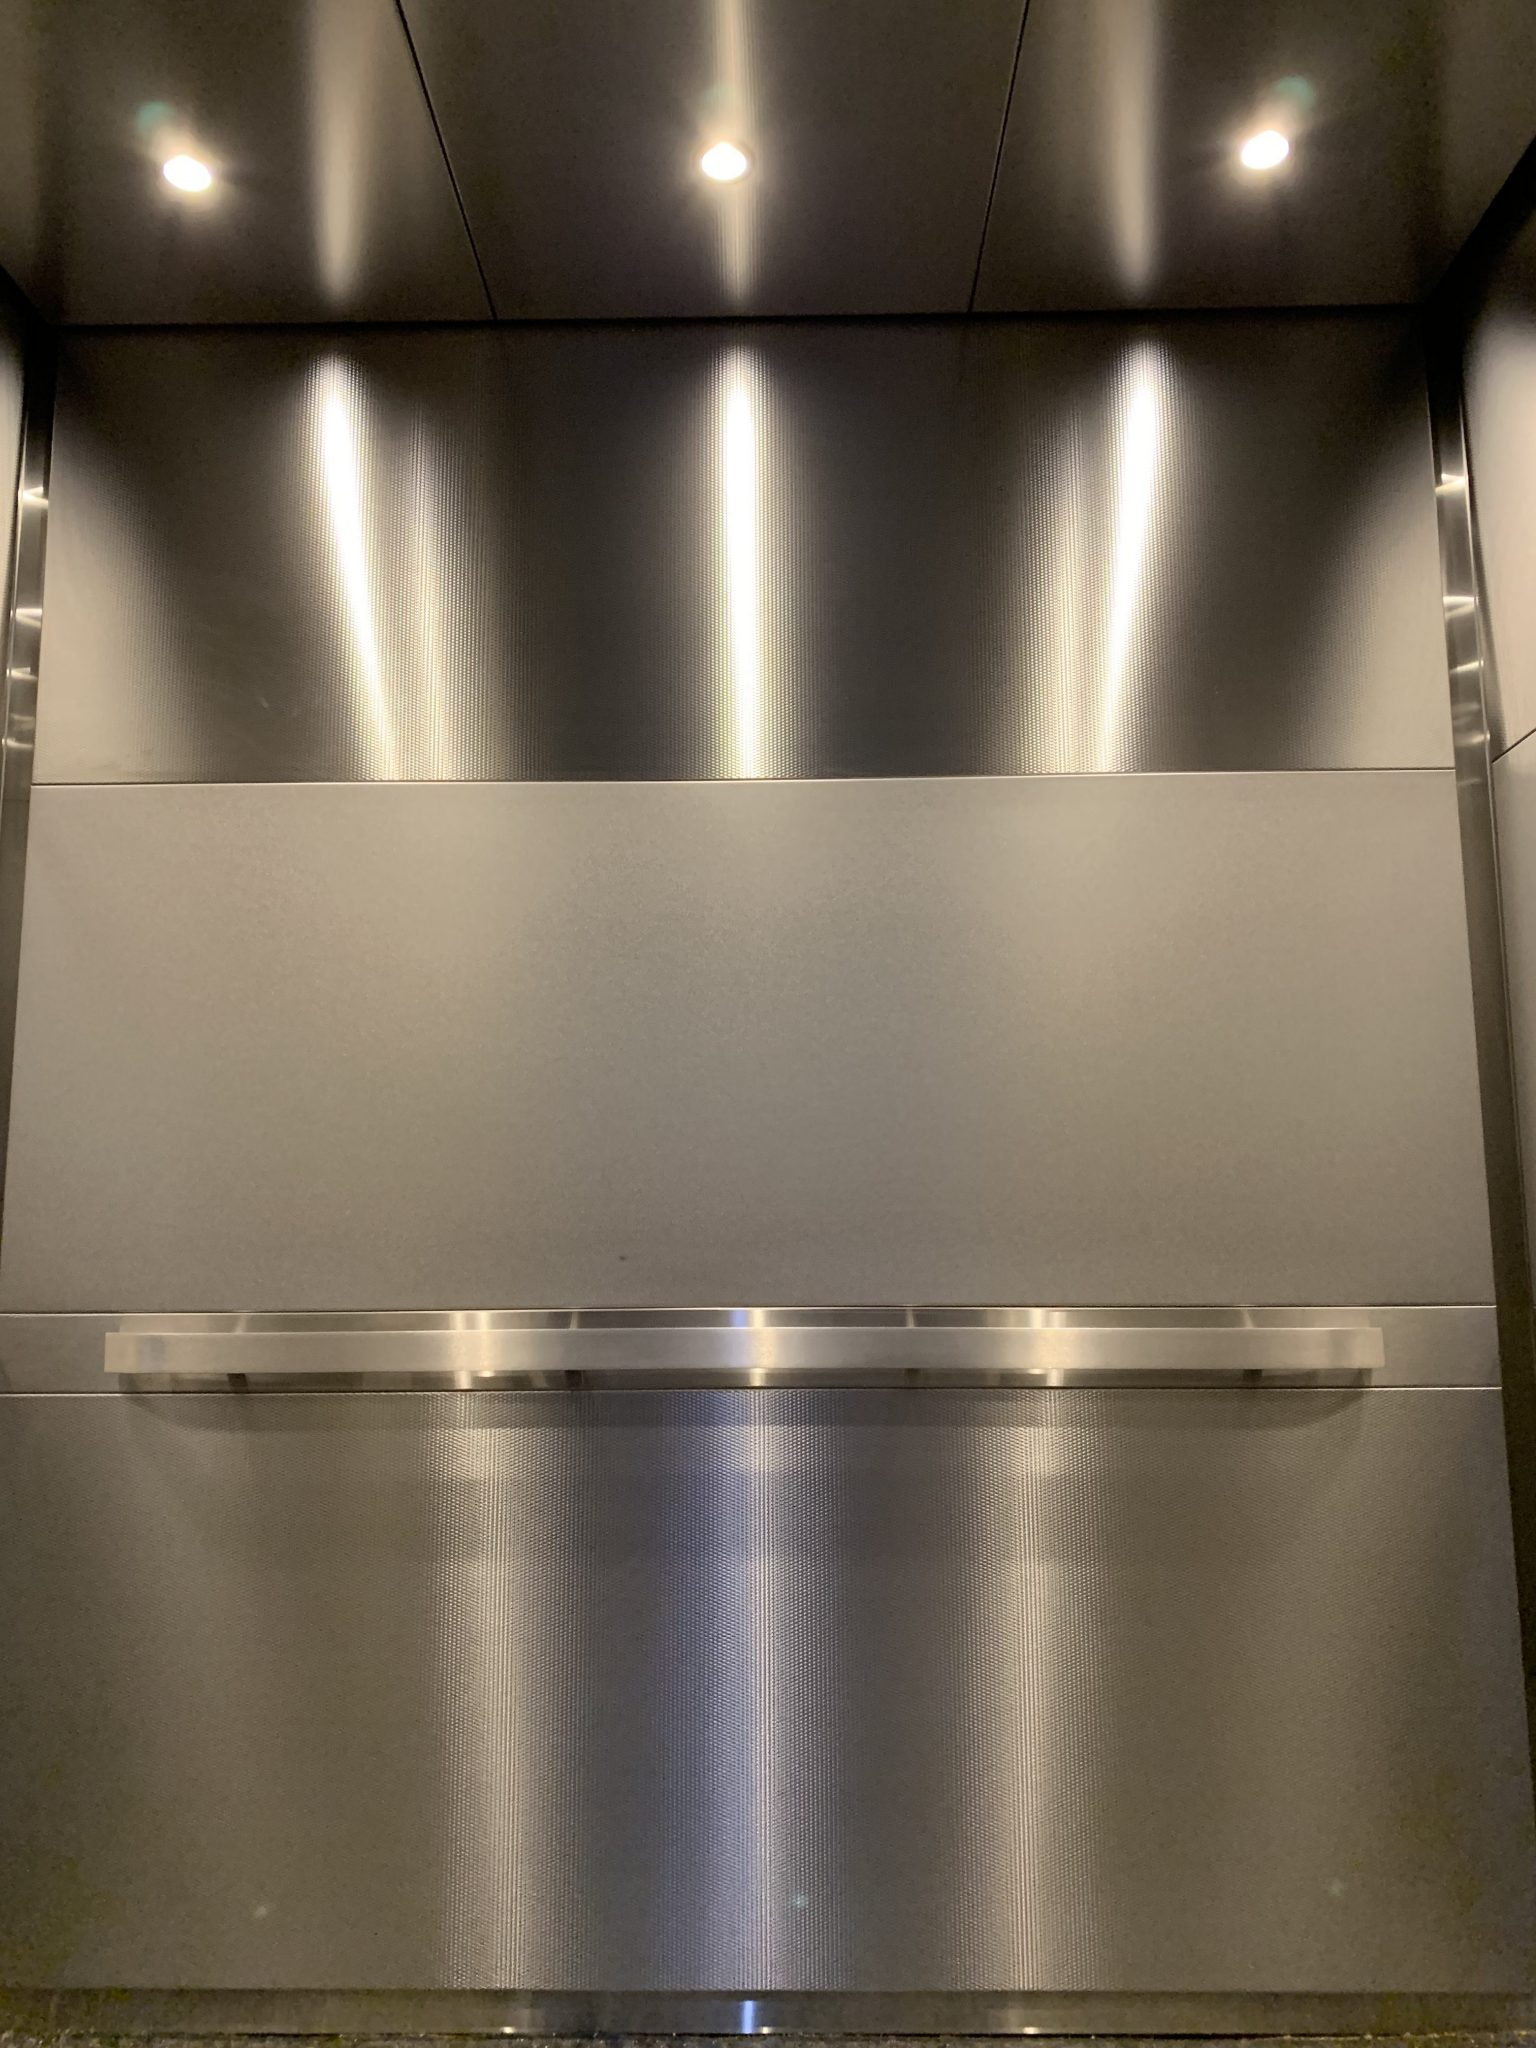 Elevator Refinishing Services in Maryland